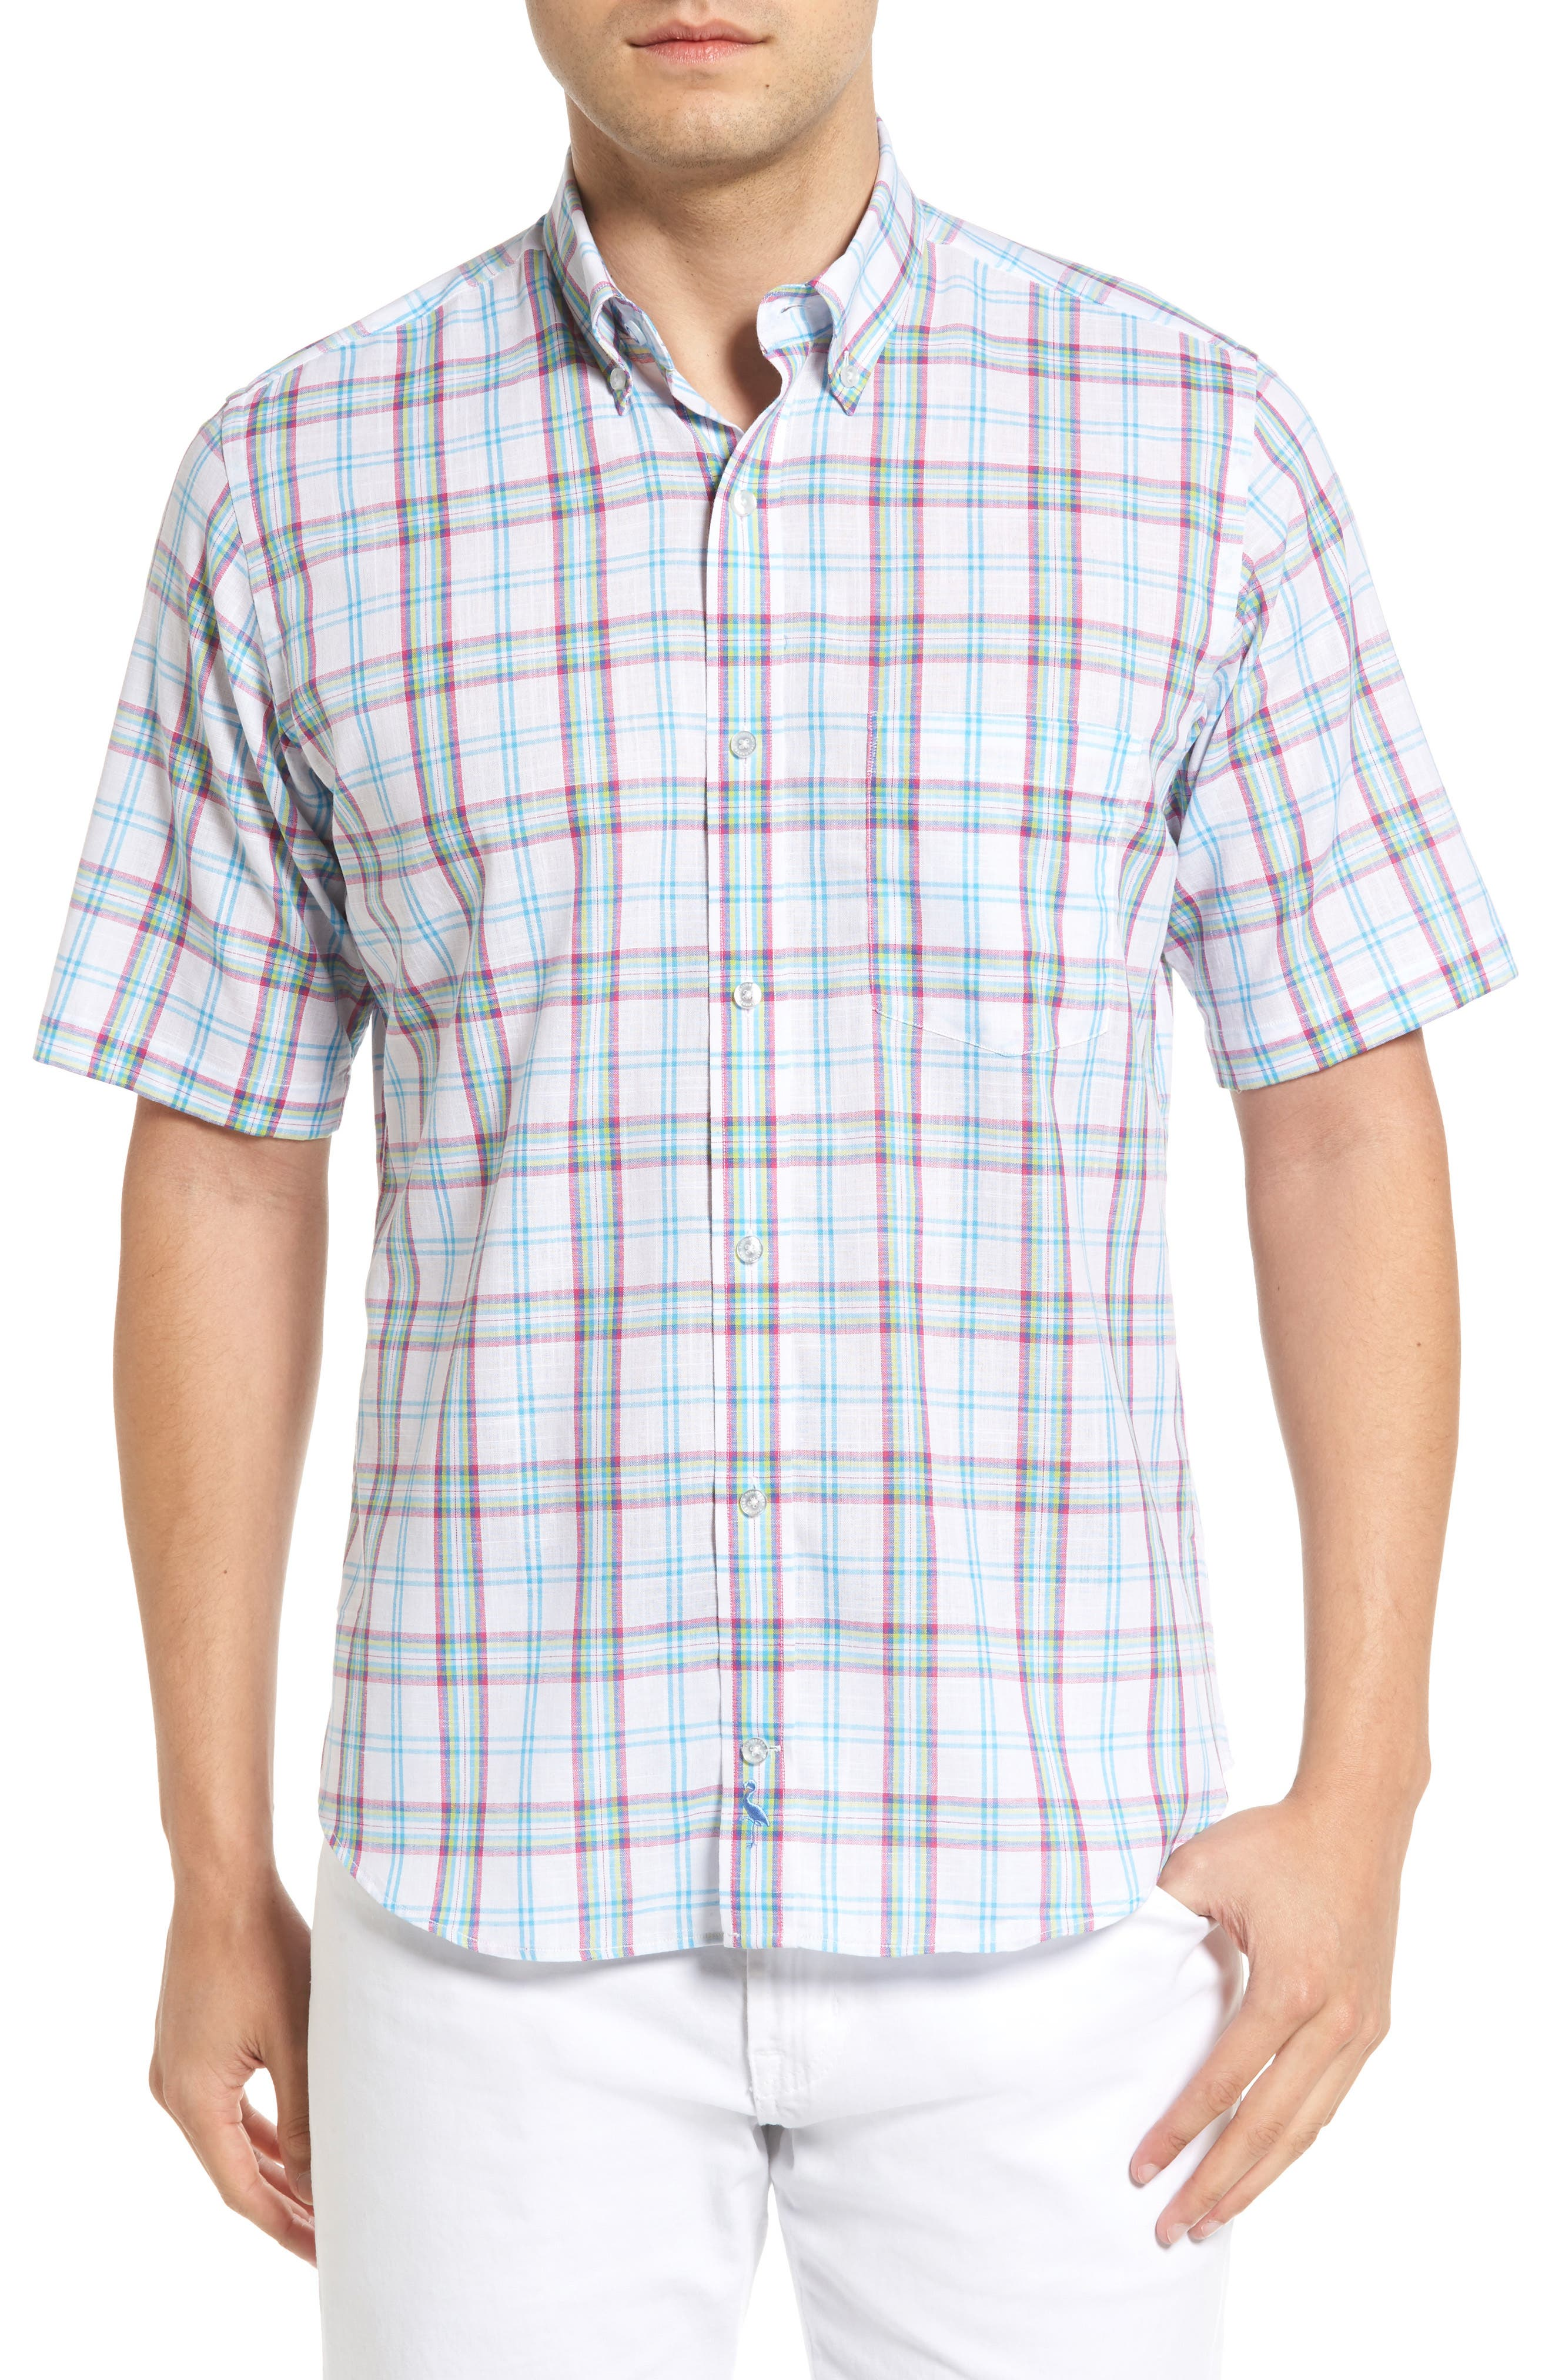 Main Image - Tailorbyrd Monterey Regular Fit Short Sleeve Plaid Sport Shirt